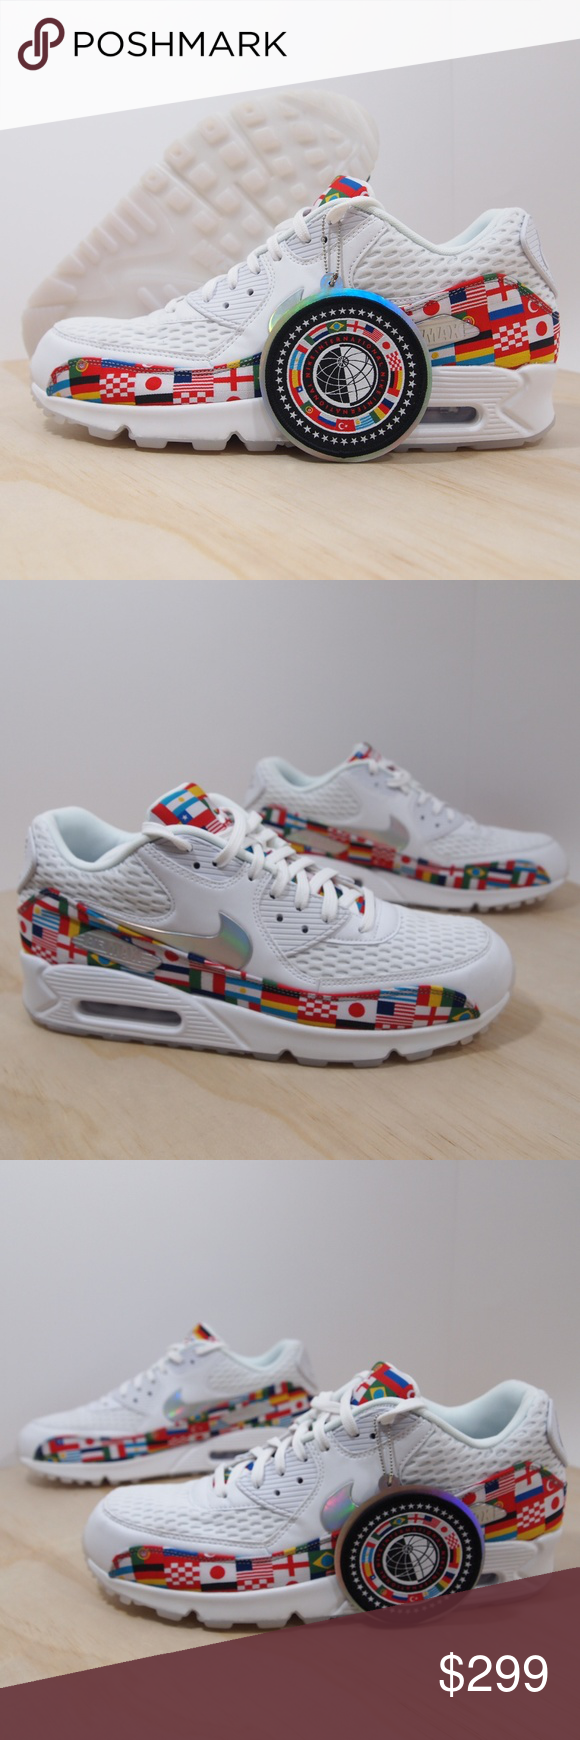 huge selection of 4e2a1 6e477 Nike Air Max 90 NIC QS International Flag Pack Men 100% Authentic. Pre-